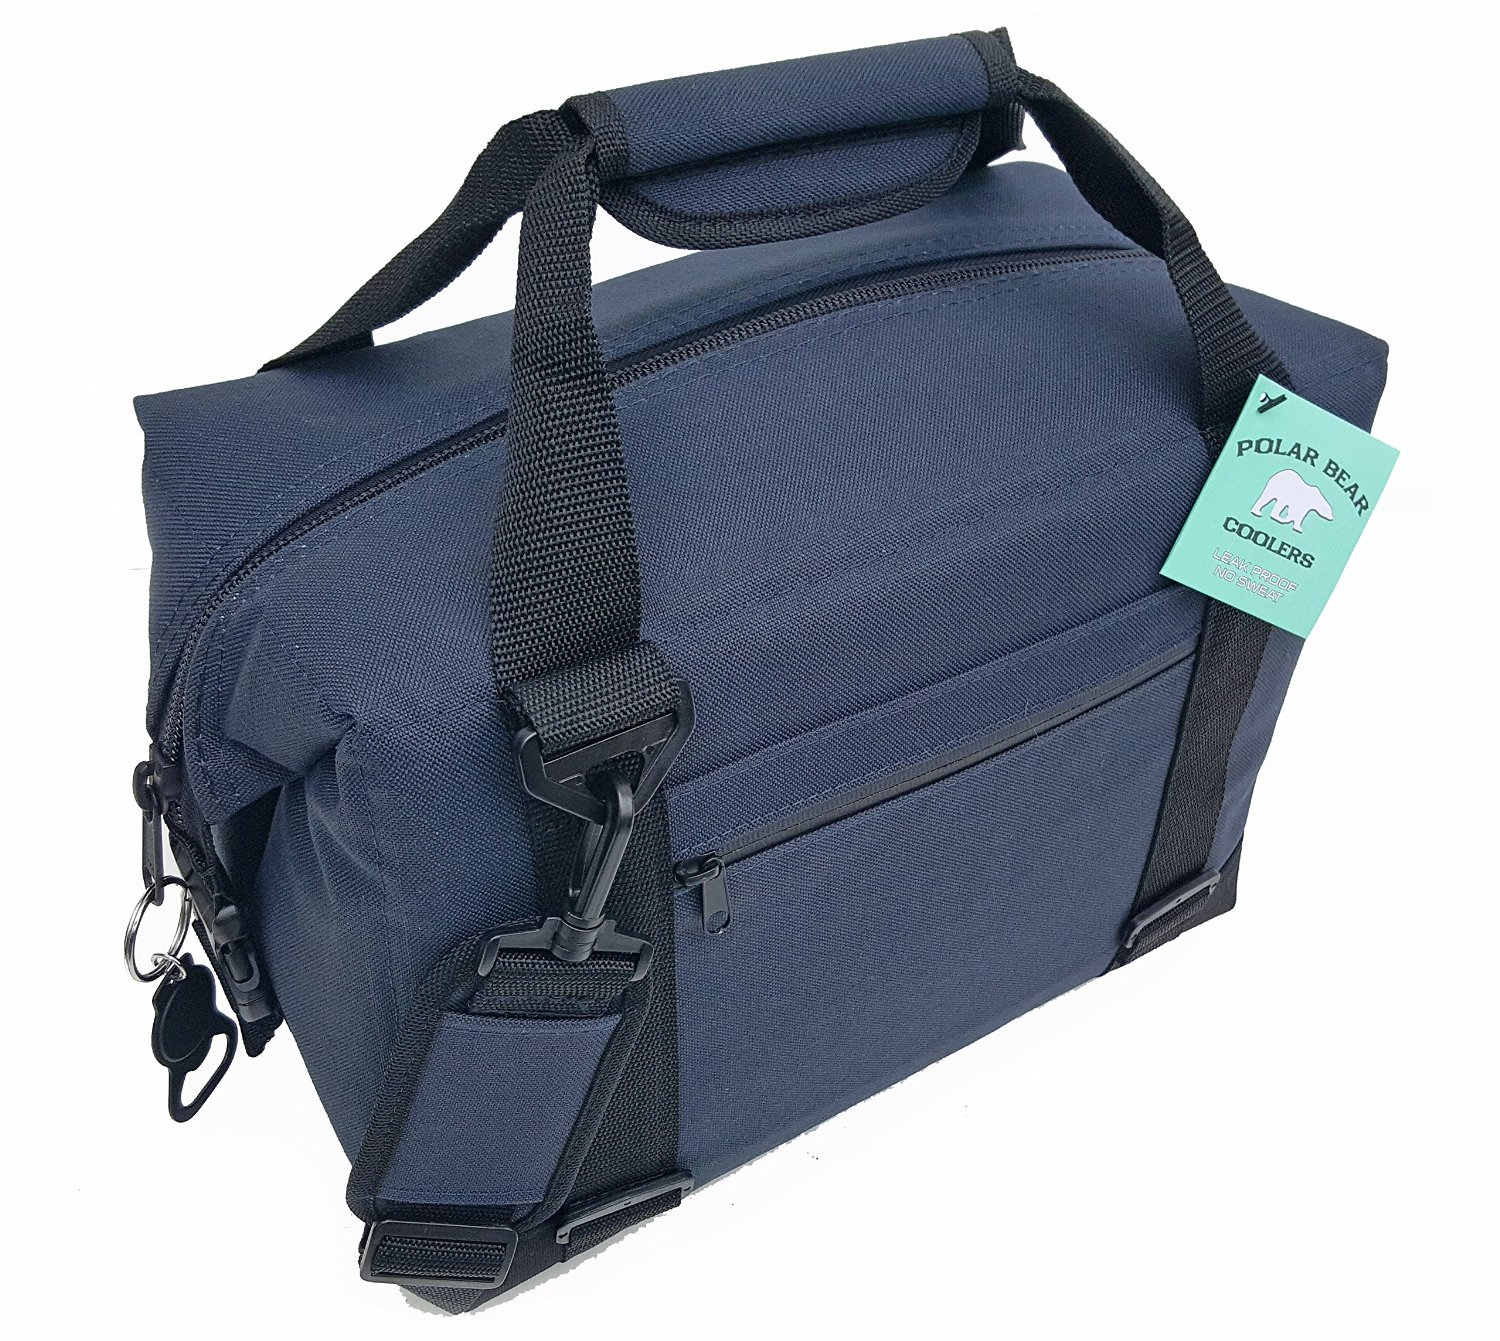 Polar Bear Coolers Nylon Line - Quality Like No Other From the Brand You Can Trust - See Touch & FEEL the Polar Bear Difference - Patent Pending - 12 Pack Navy